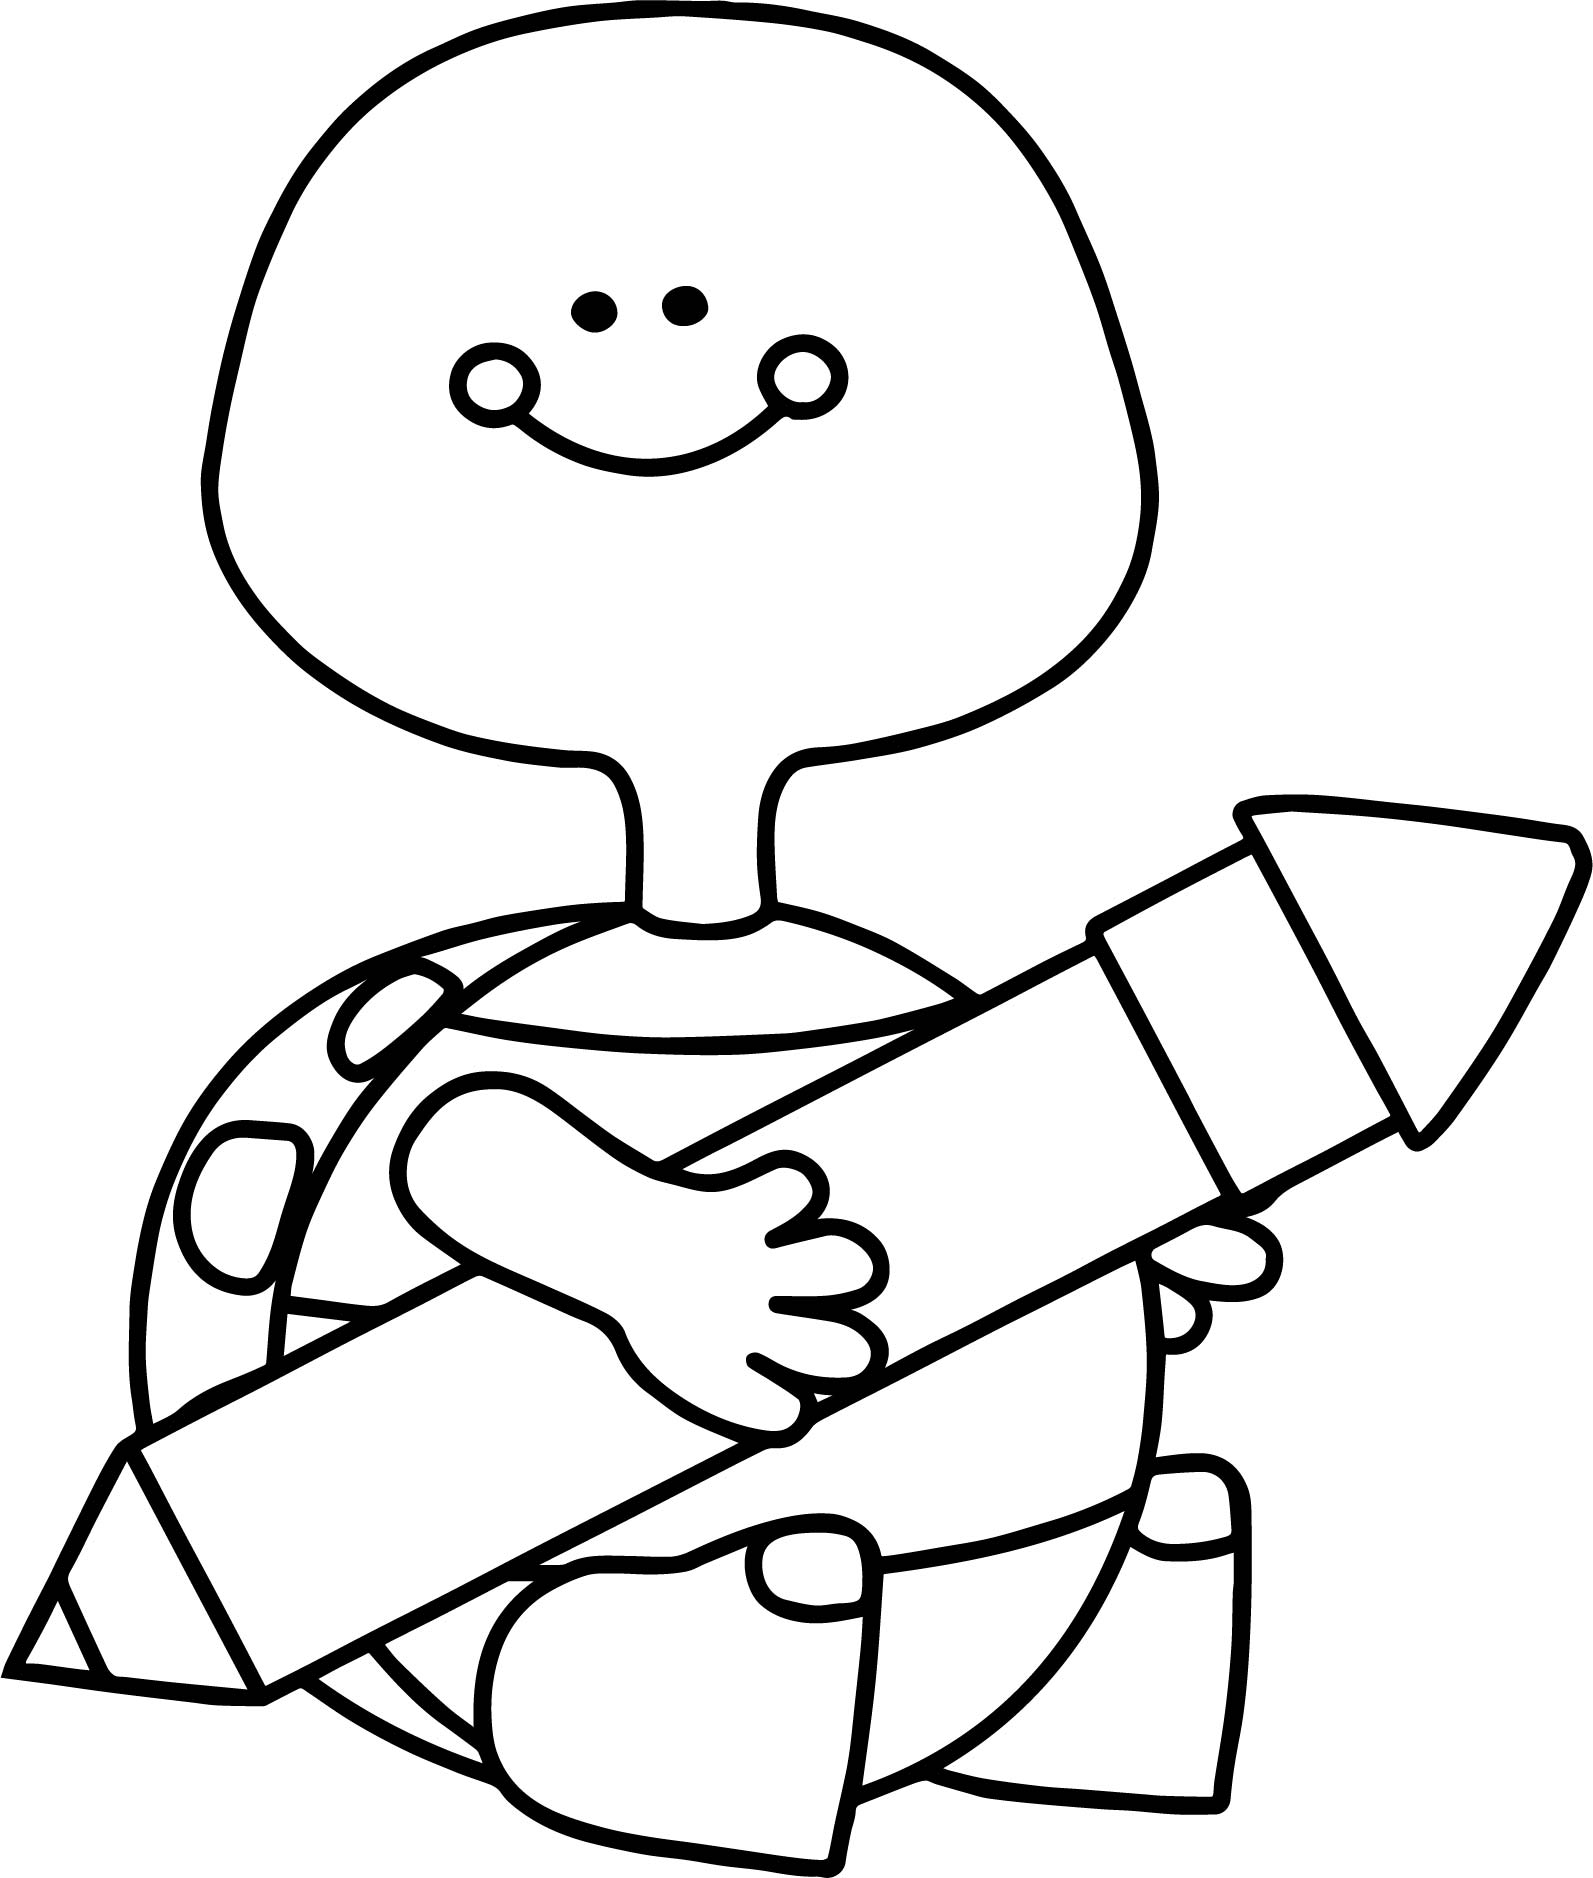 turtle holding pen coloring page wecoloringpage